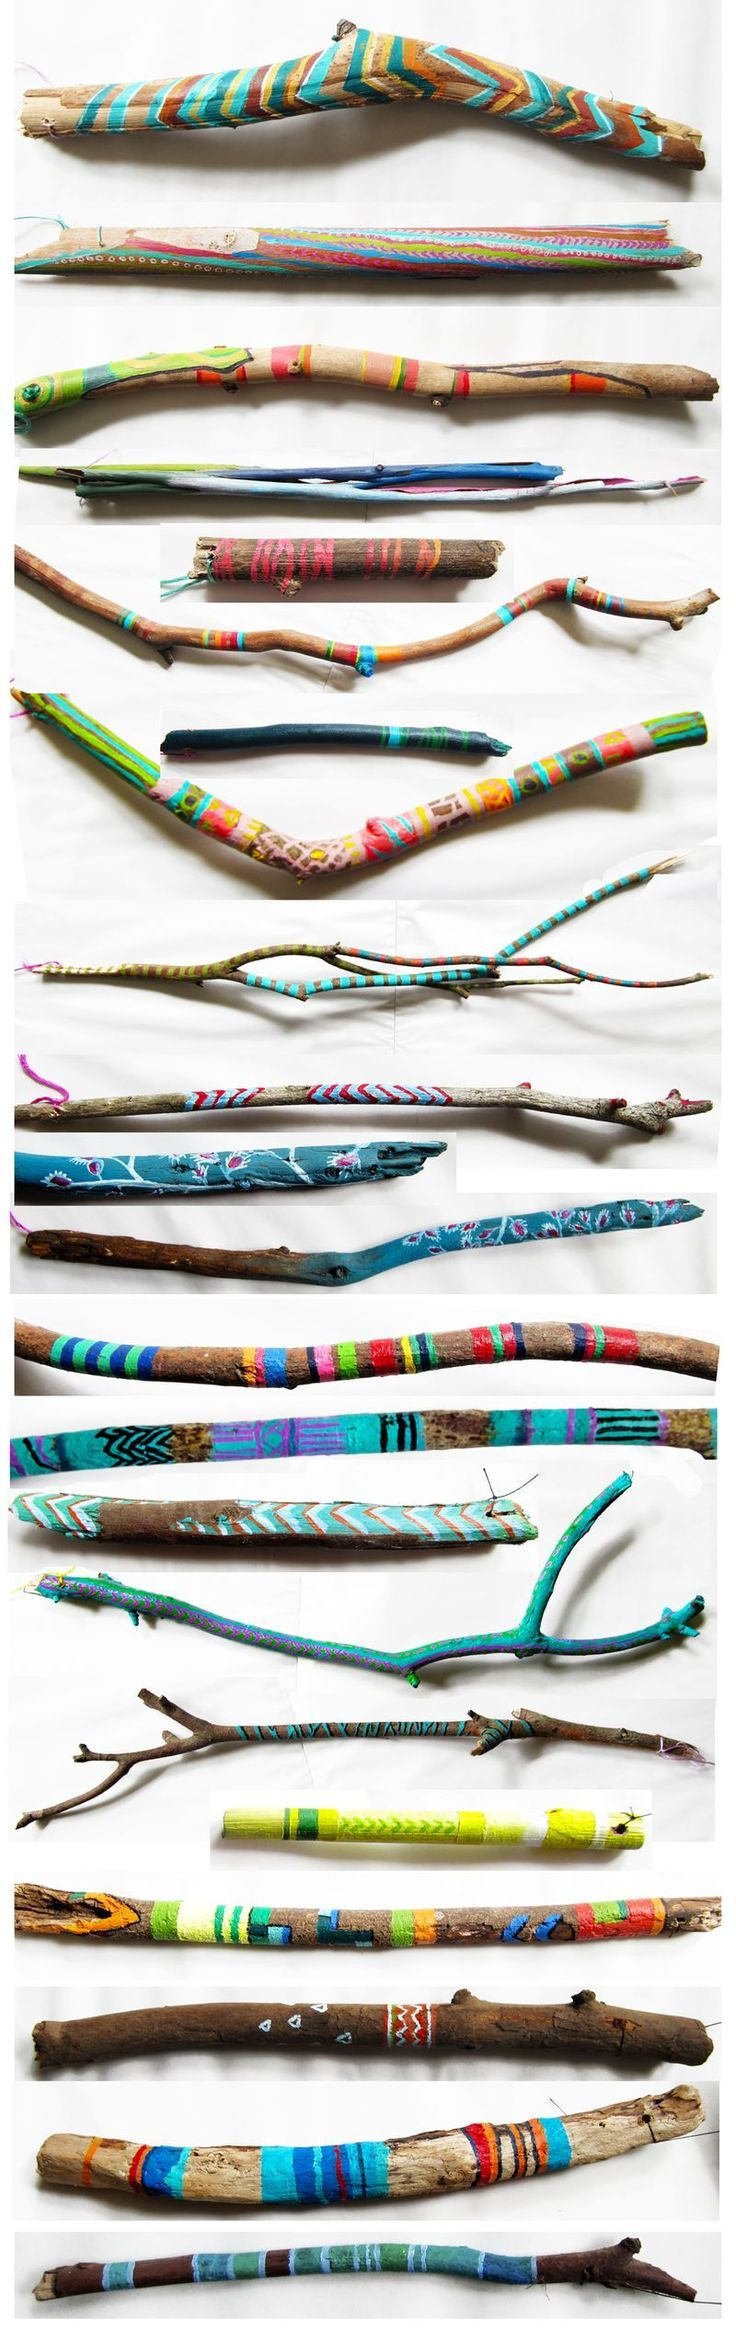 Painted sticks. So simple, so beautiful, great way for kids to display their creativity.